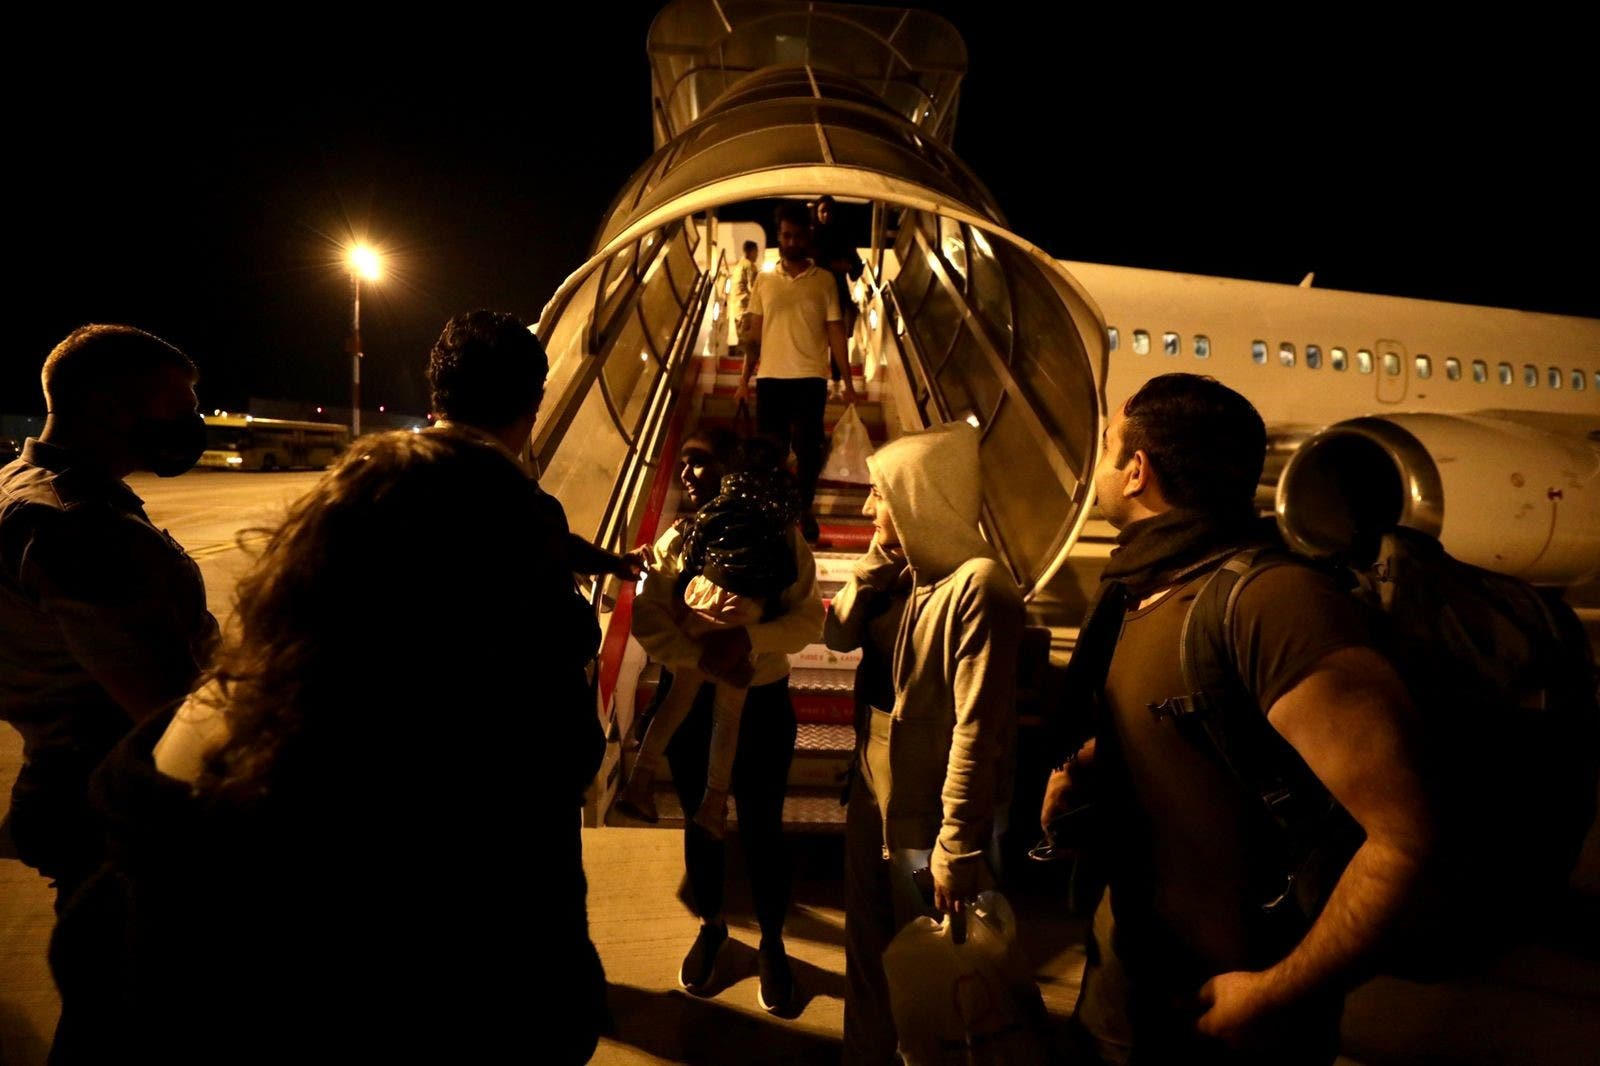 A plane carrying female Afghan activists evacuated from Kabul touches down in Albania. (Supplied)